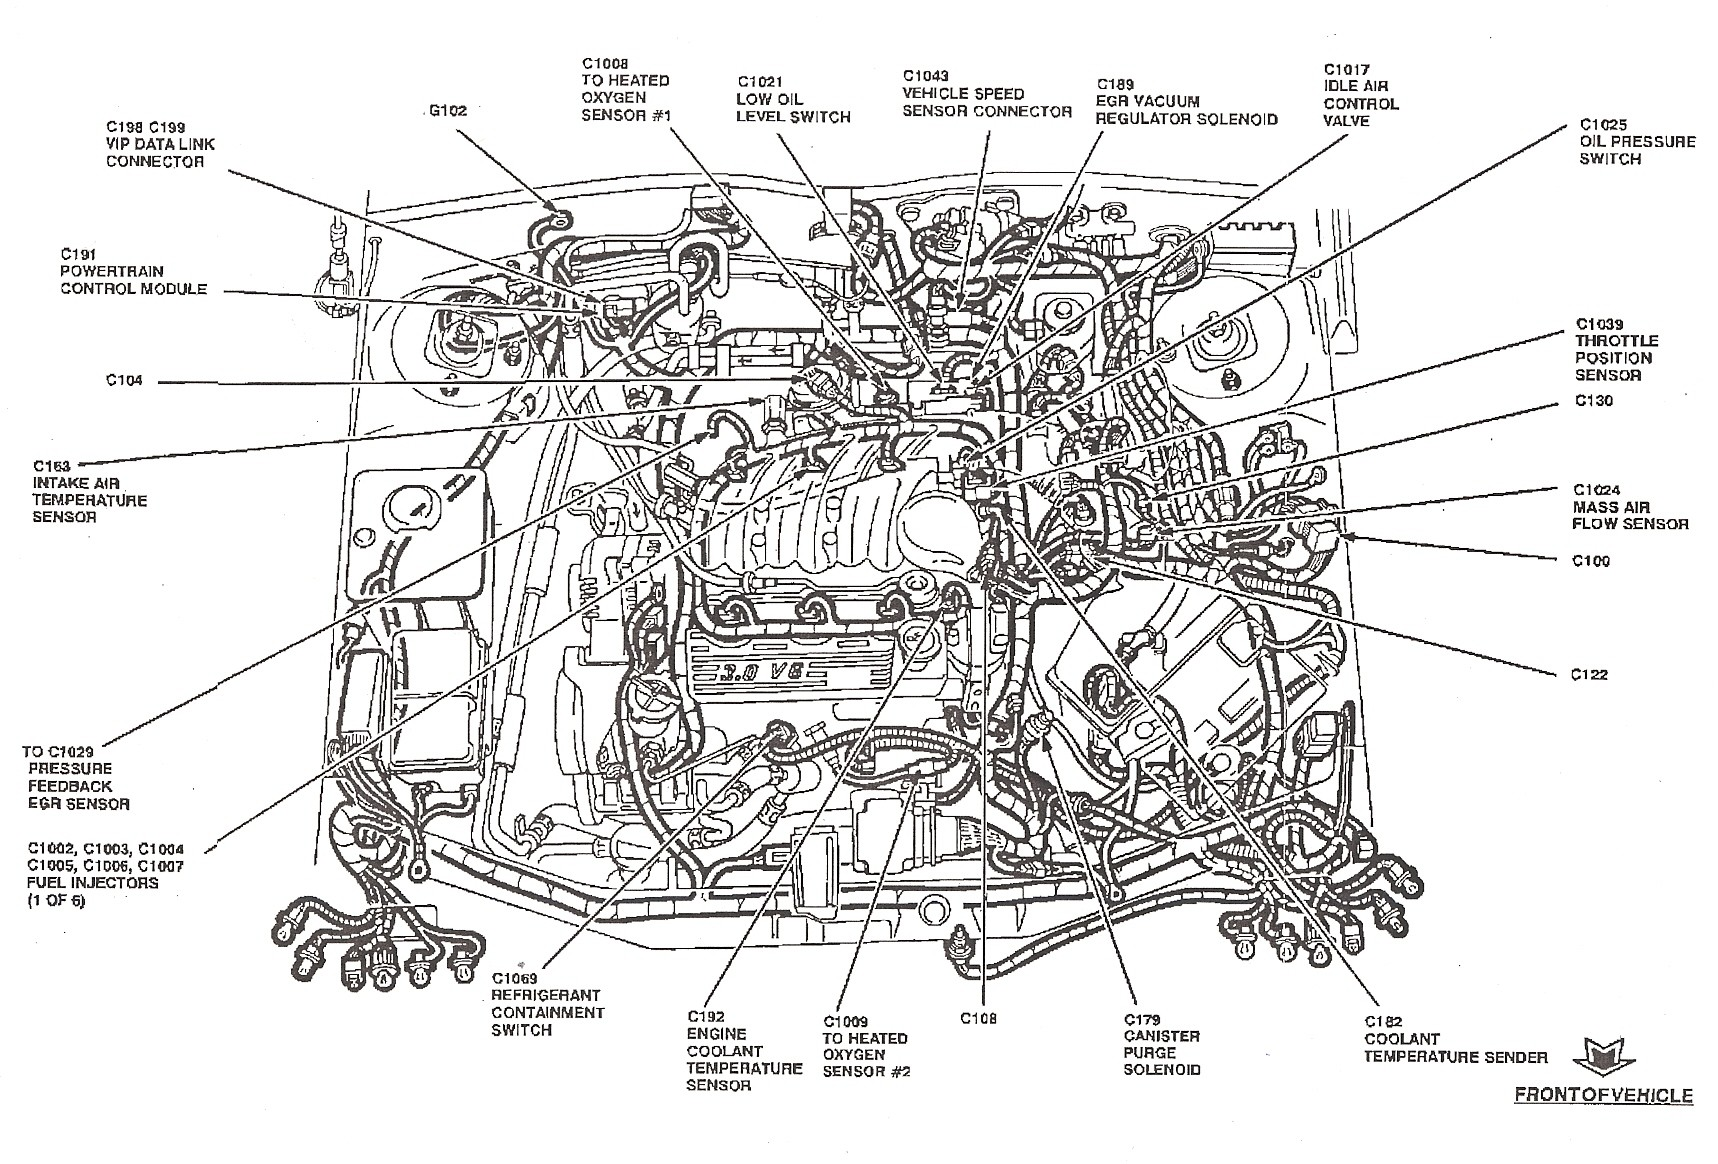 2000 Ford Focus Zx3 Engine Diagram Basic Guide Wiring